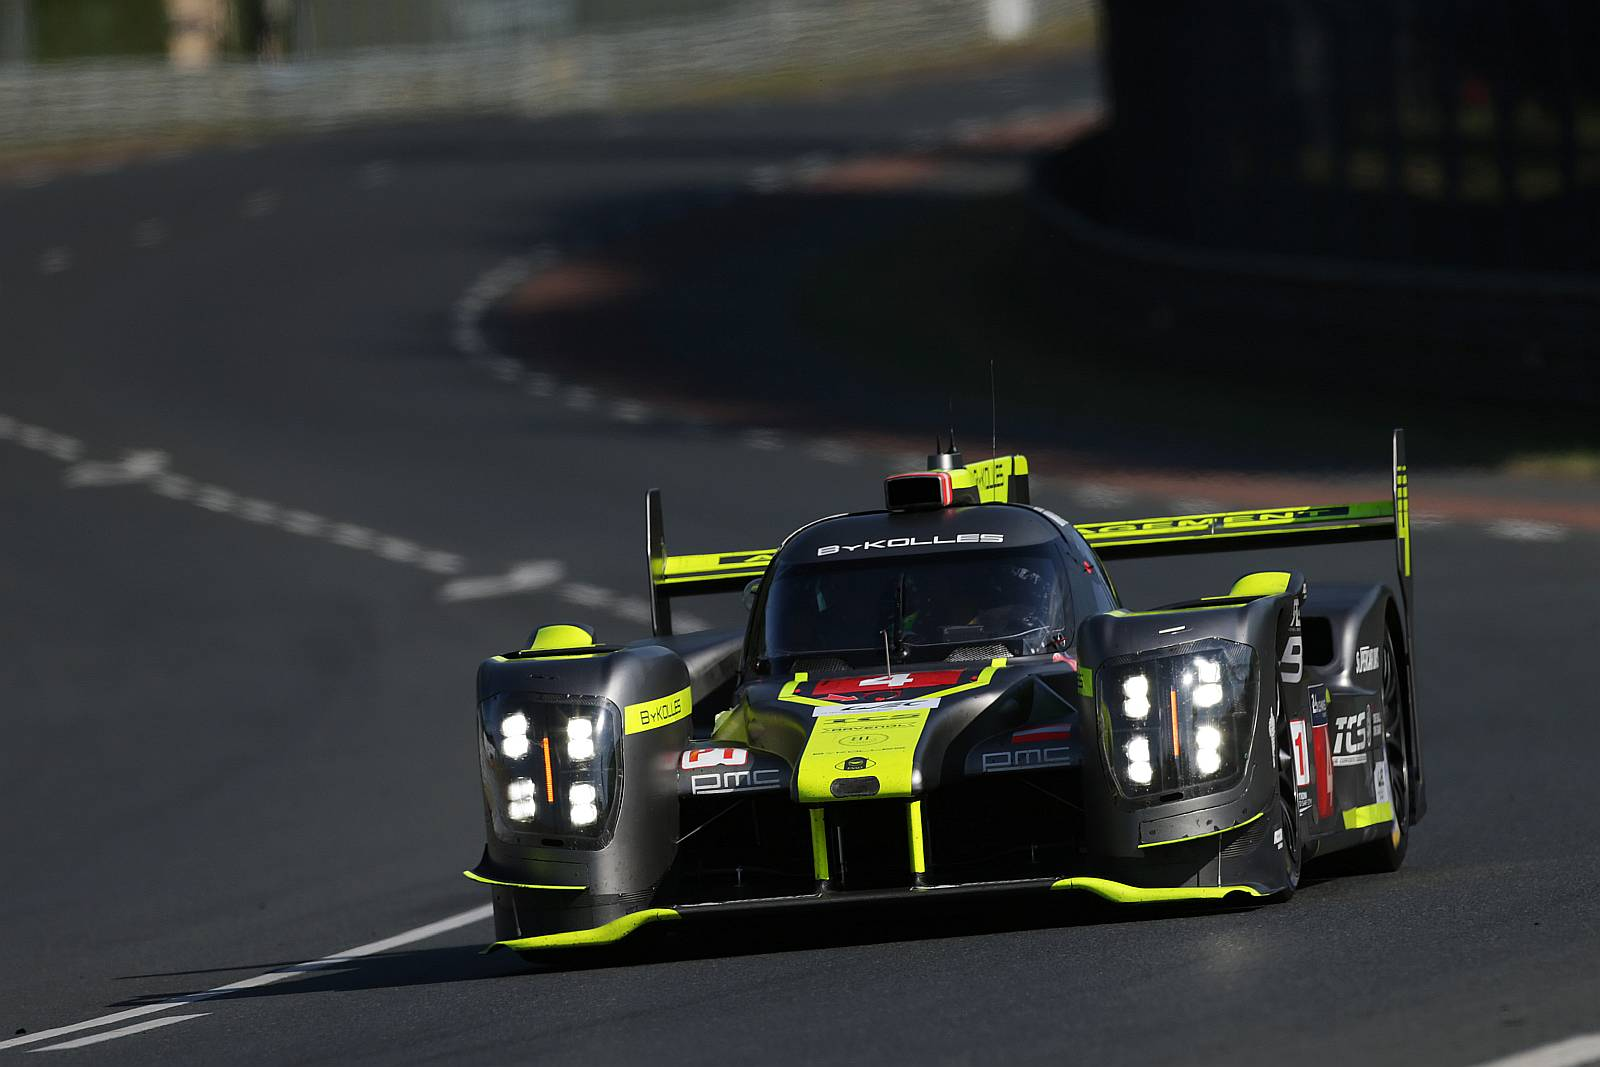 ByKOLLES RACING has strong appearance with fast lap times at the 24 Hours of Le Mans